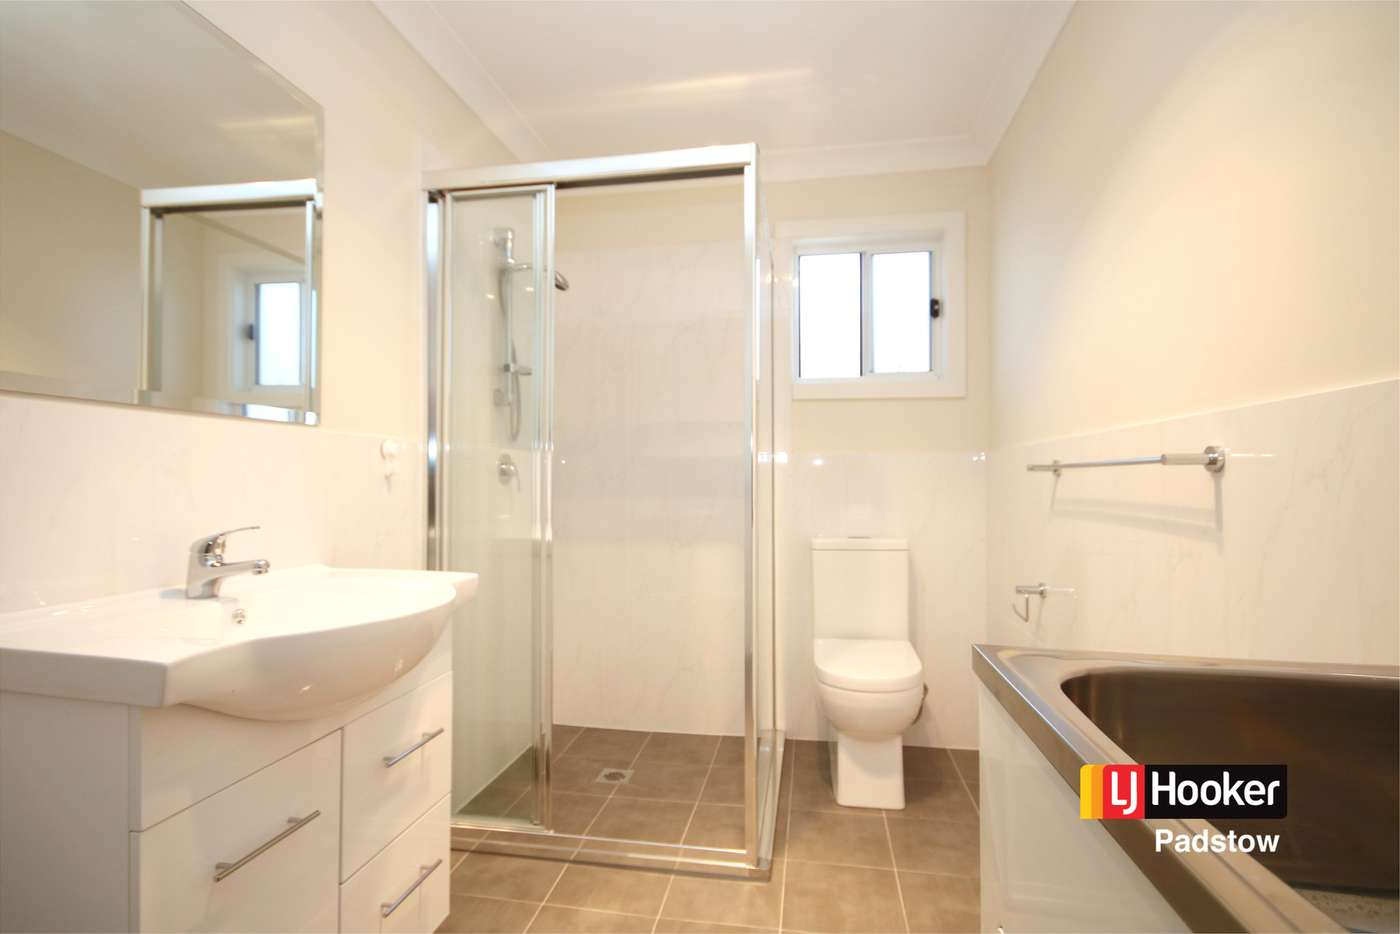 Sixth view of Homely house listing, 40A Ronald Street, Padstow NSW 2211